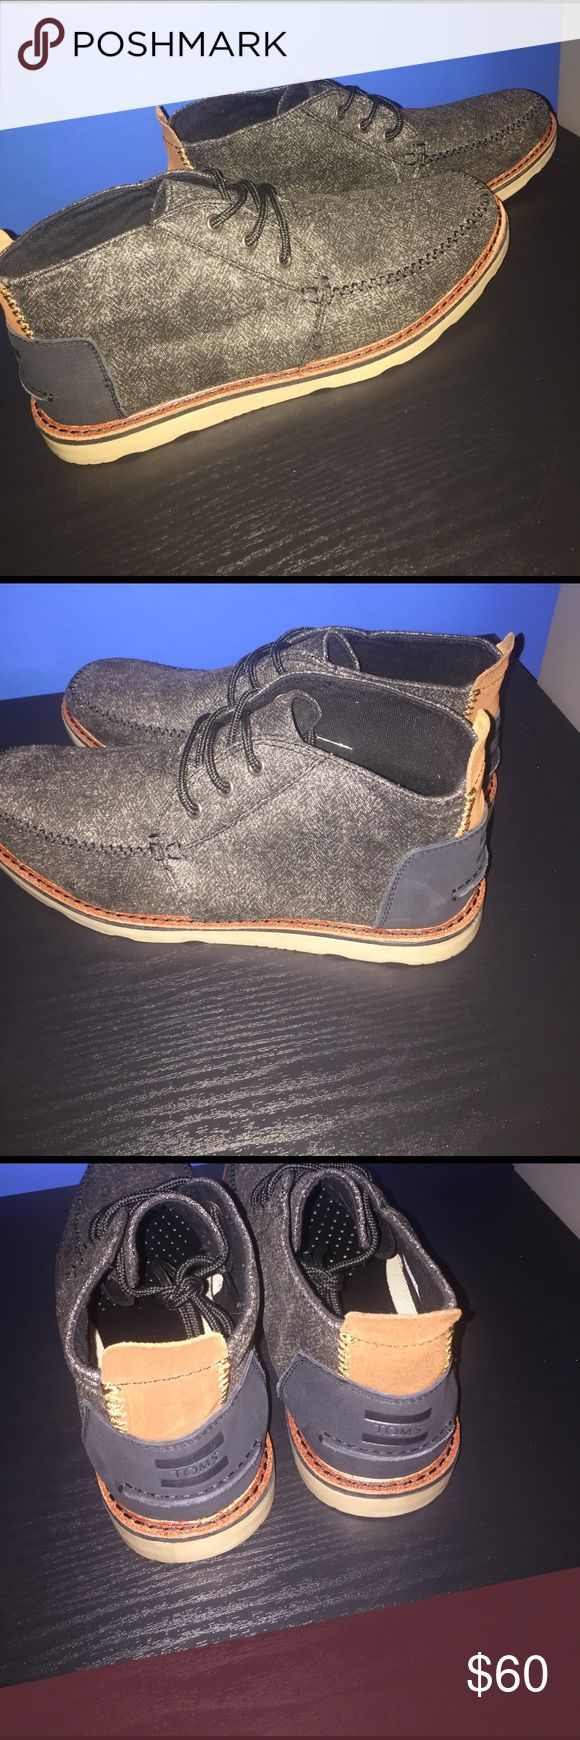 Men's Toms shoes Hello buyers. I am selling these Toms shoes size 11 men.  I have never worn them before. They are in great condition. Asking $60 willing to negotiate TOMS Shoes Chukka Boots